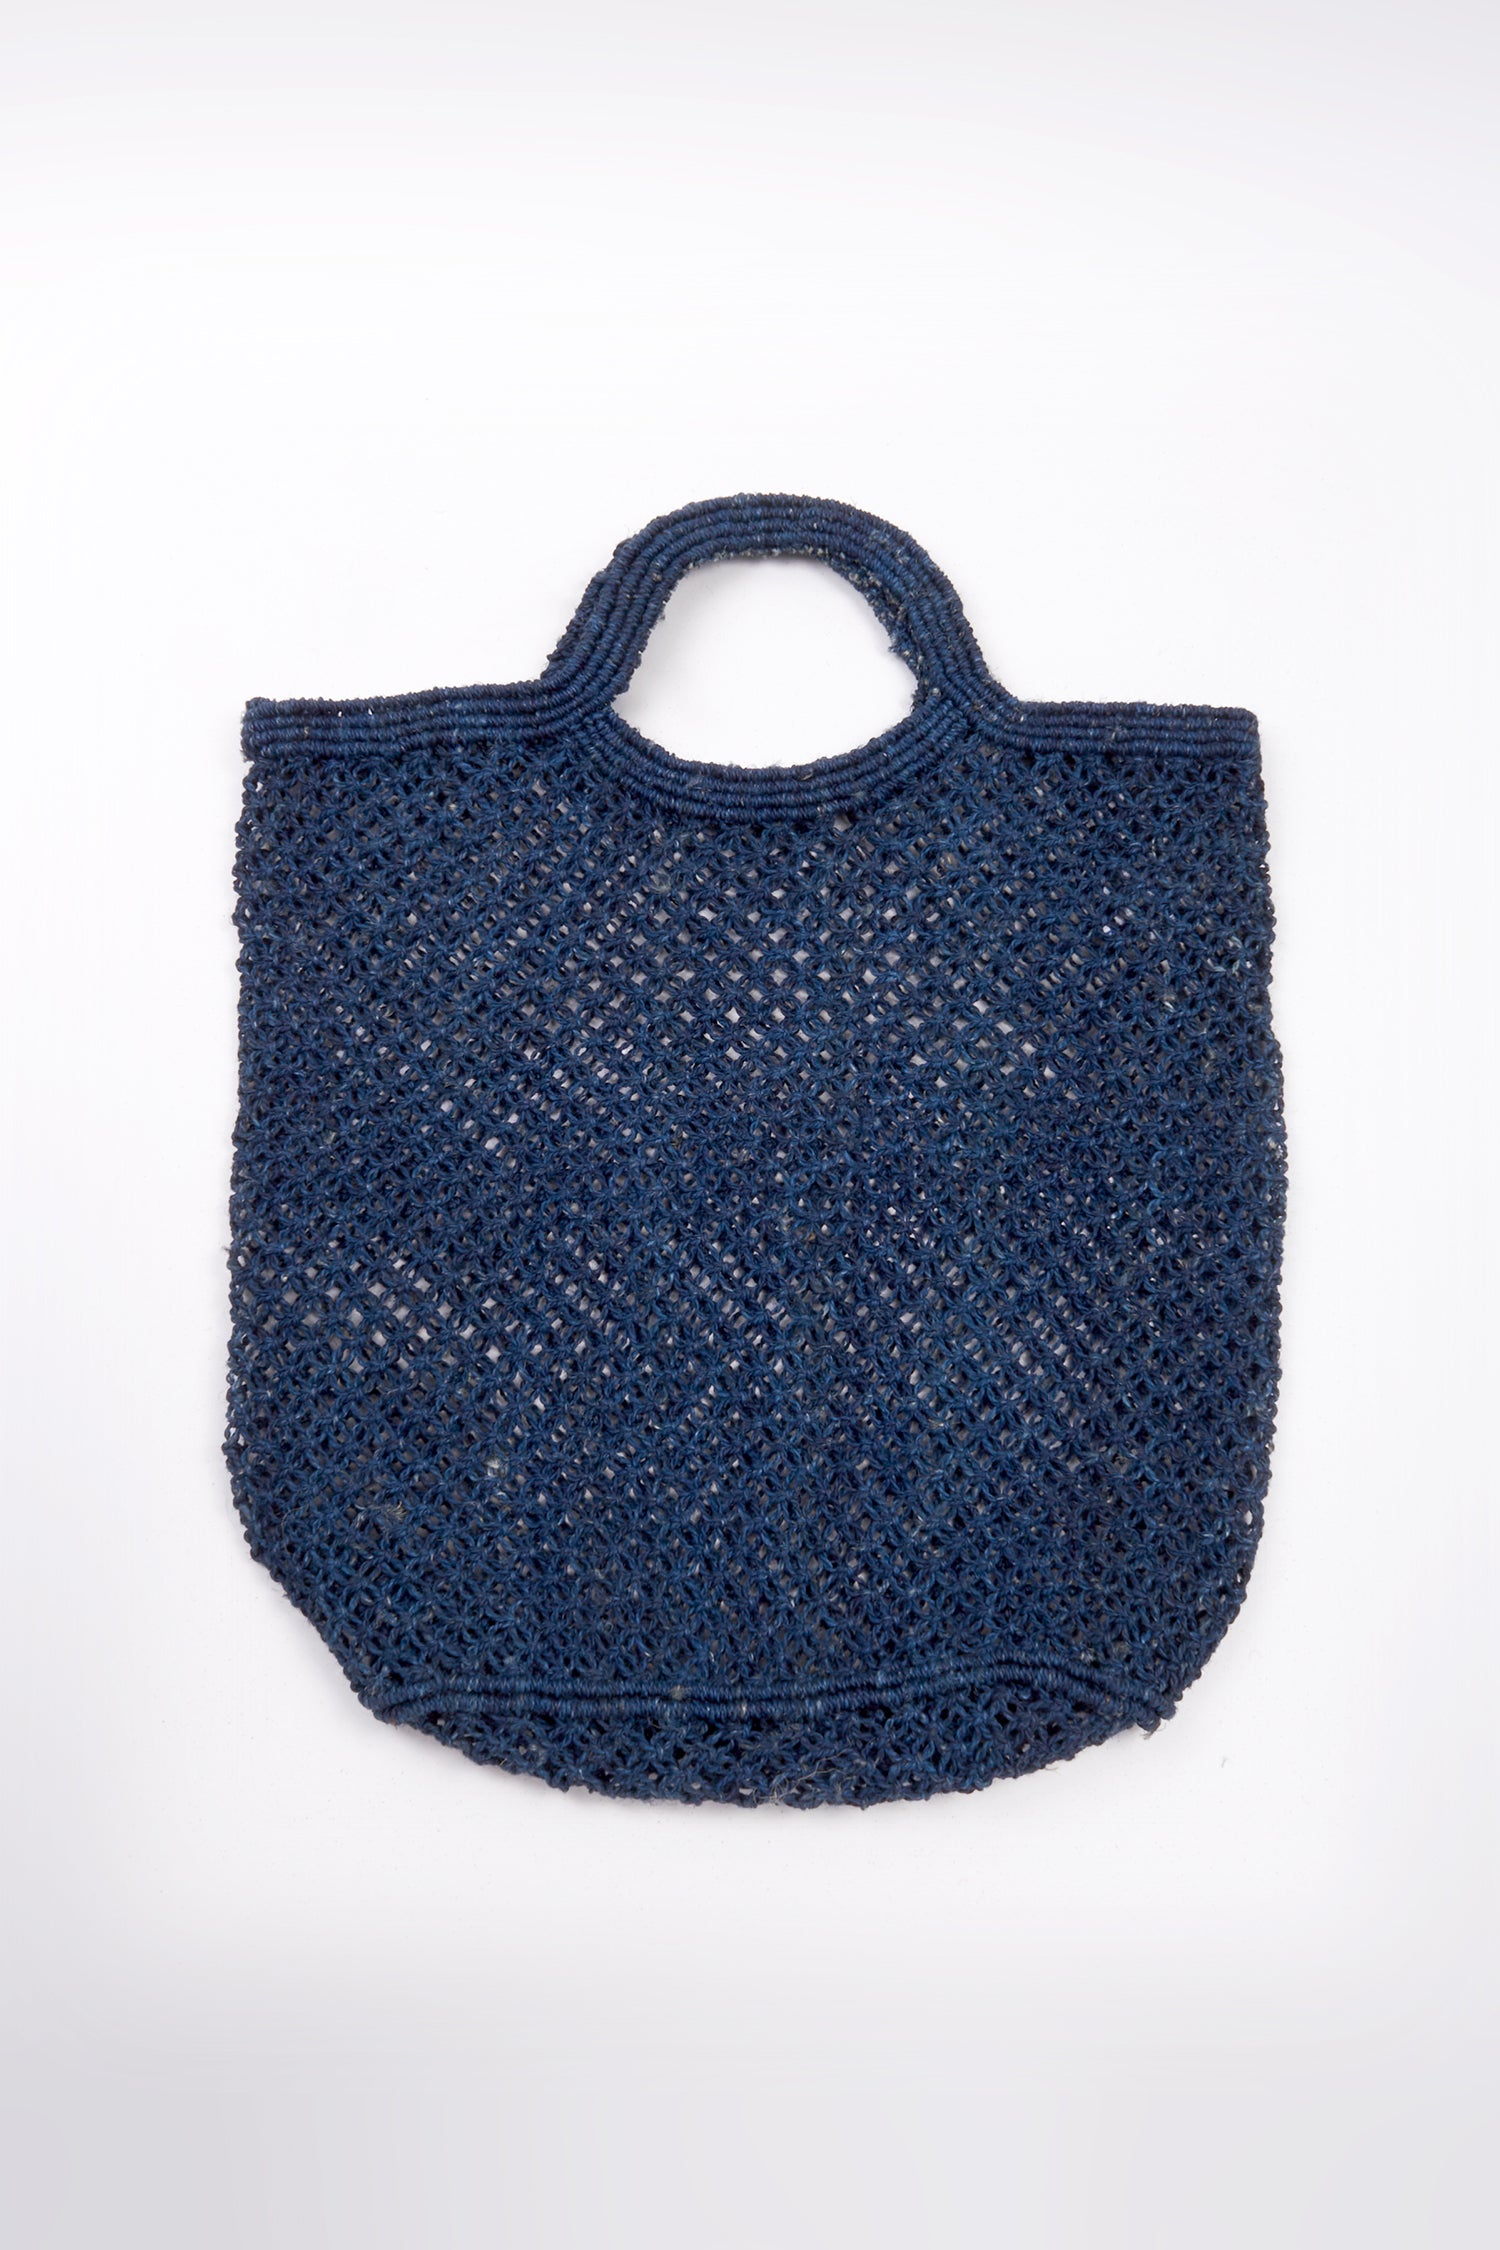 JUTE MACRAME SHOPPING BAG - REAL INDIGO